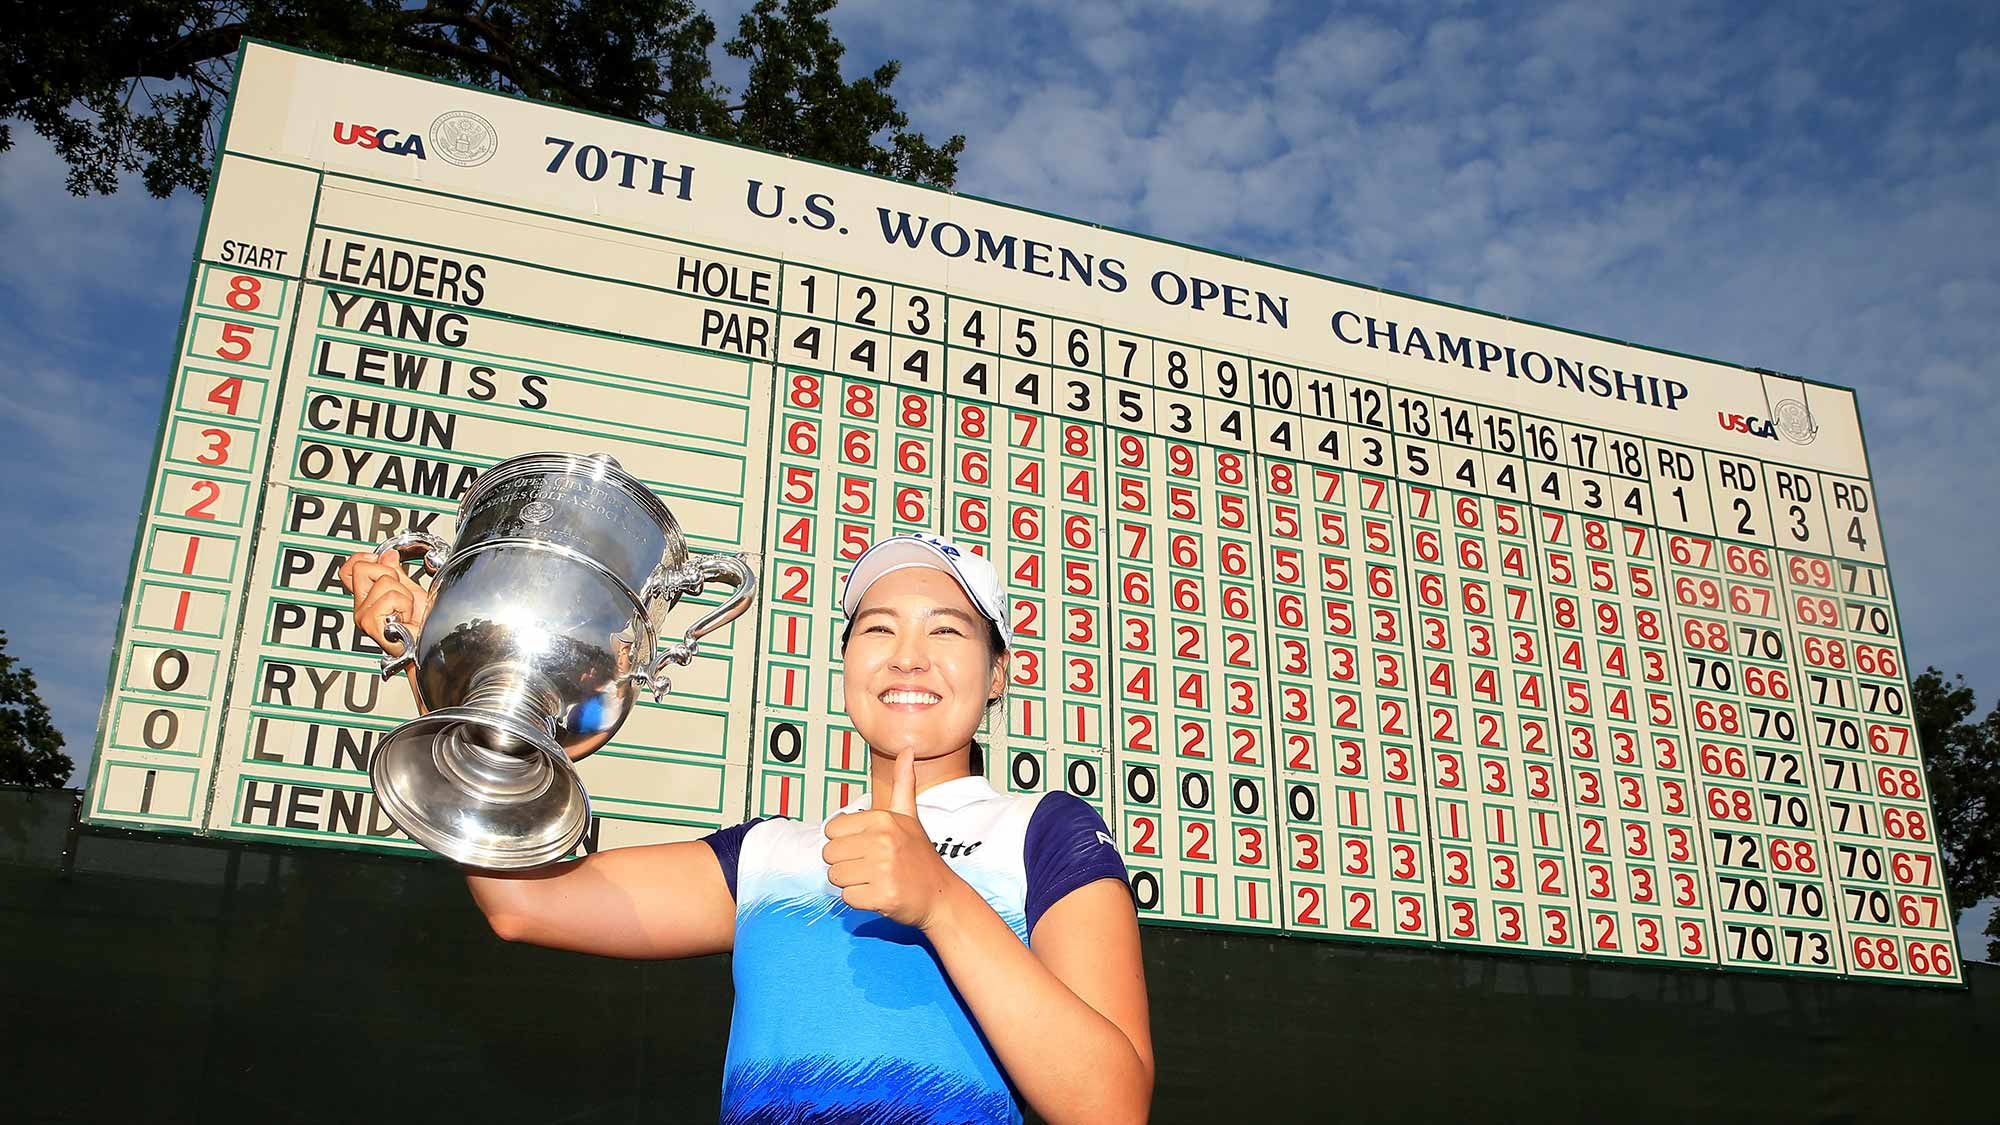 In Gee Chun of South Korea poses with the trophy after winning the U.S. Women's Open at Lancaster Country Club